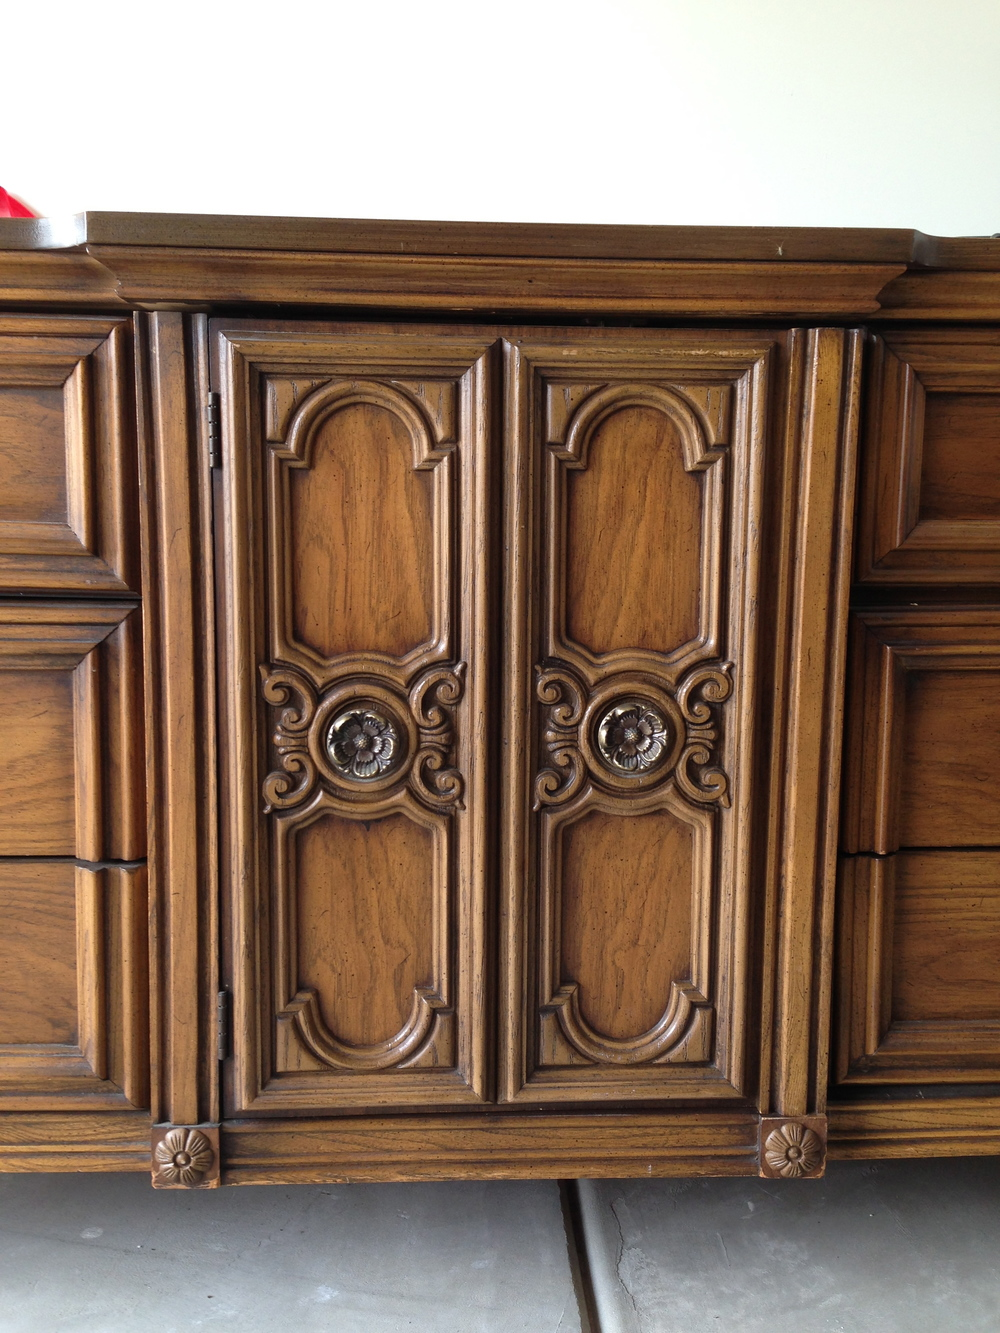 The middle panel of the dresser featured this cabinet door with beautiful detail